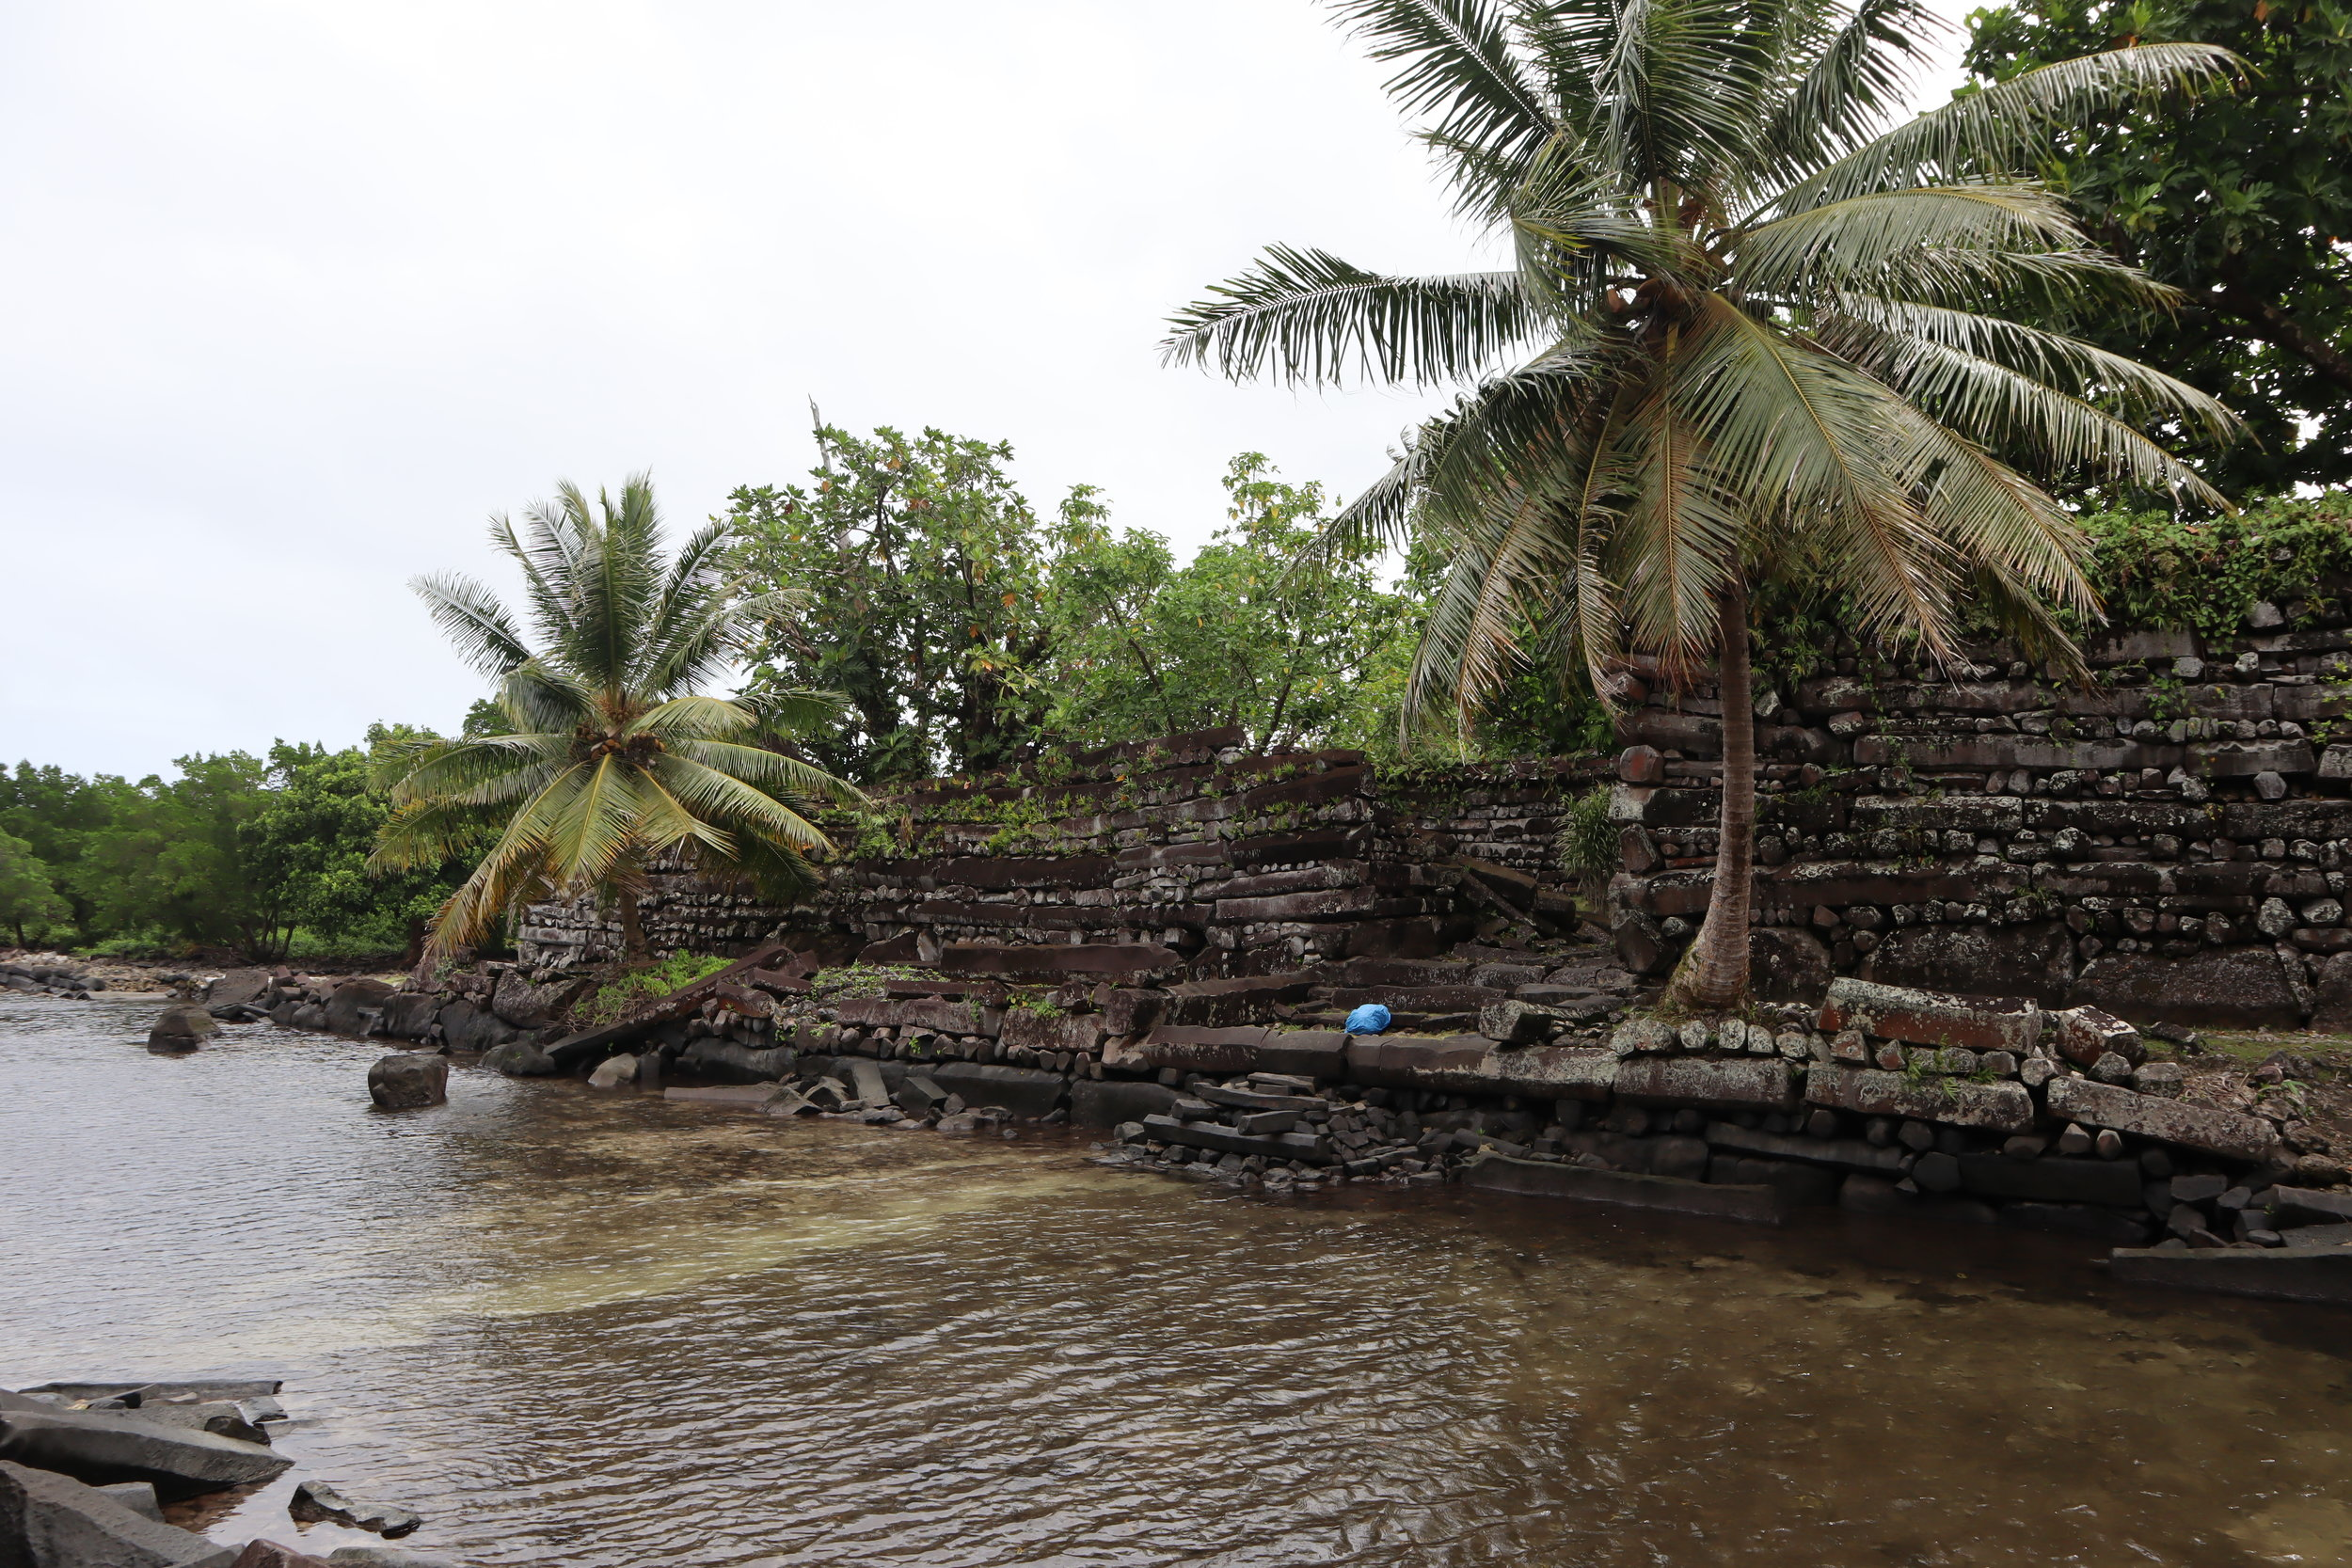 The ancient ruins of Nan Madol, Pohnpei